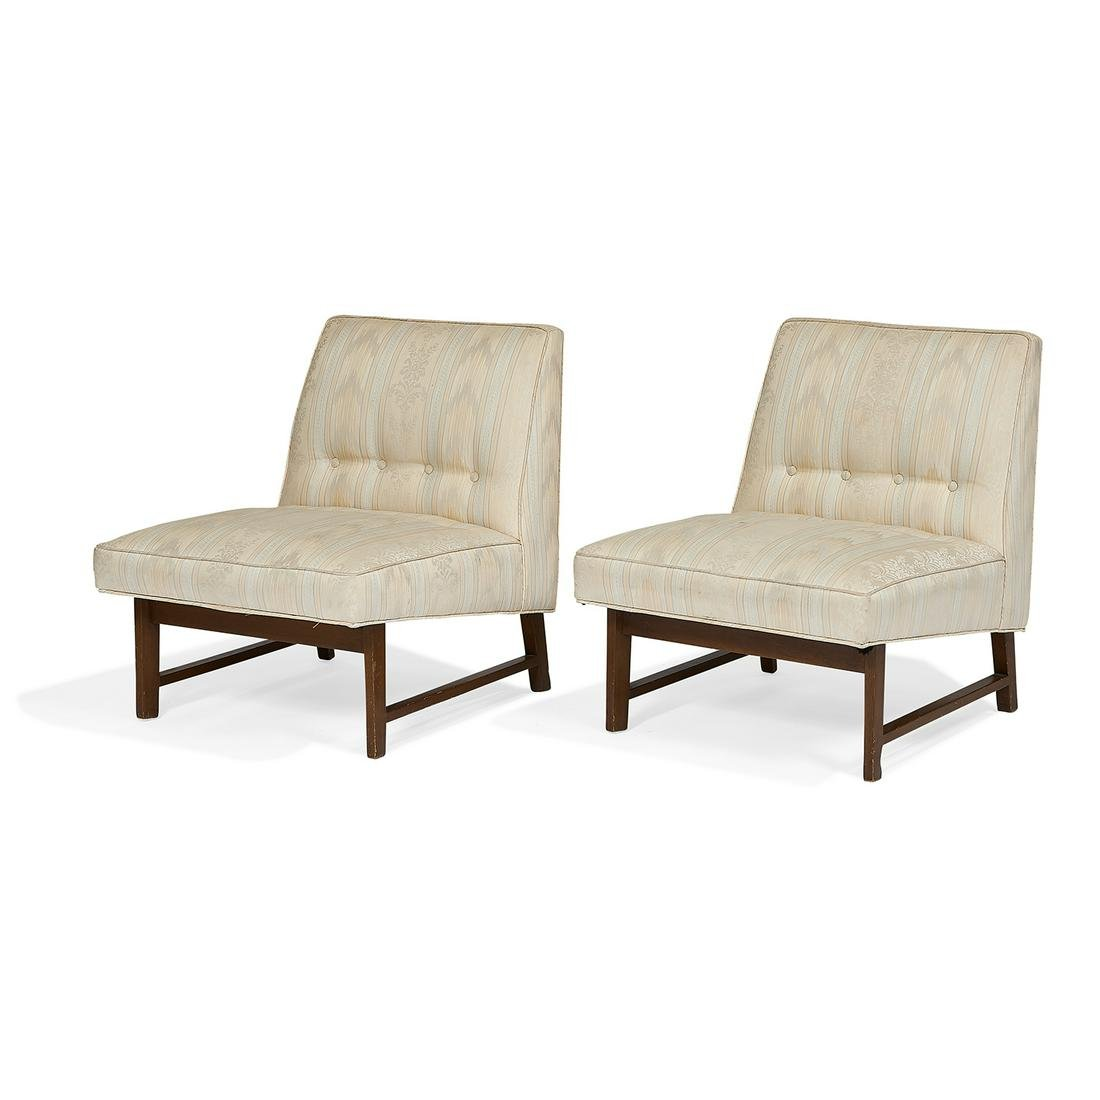 Edward Wormley for Dunbar Slipper chairs, pair